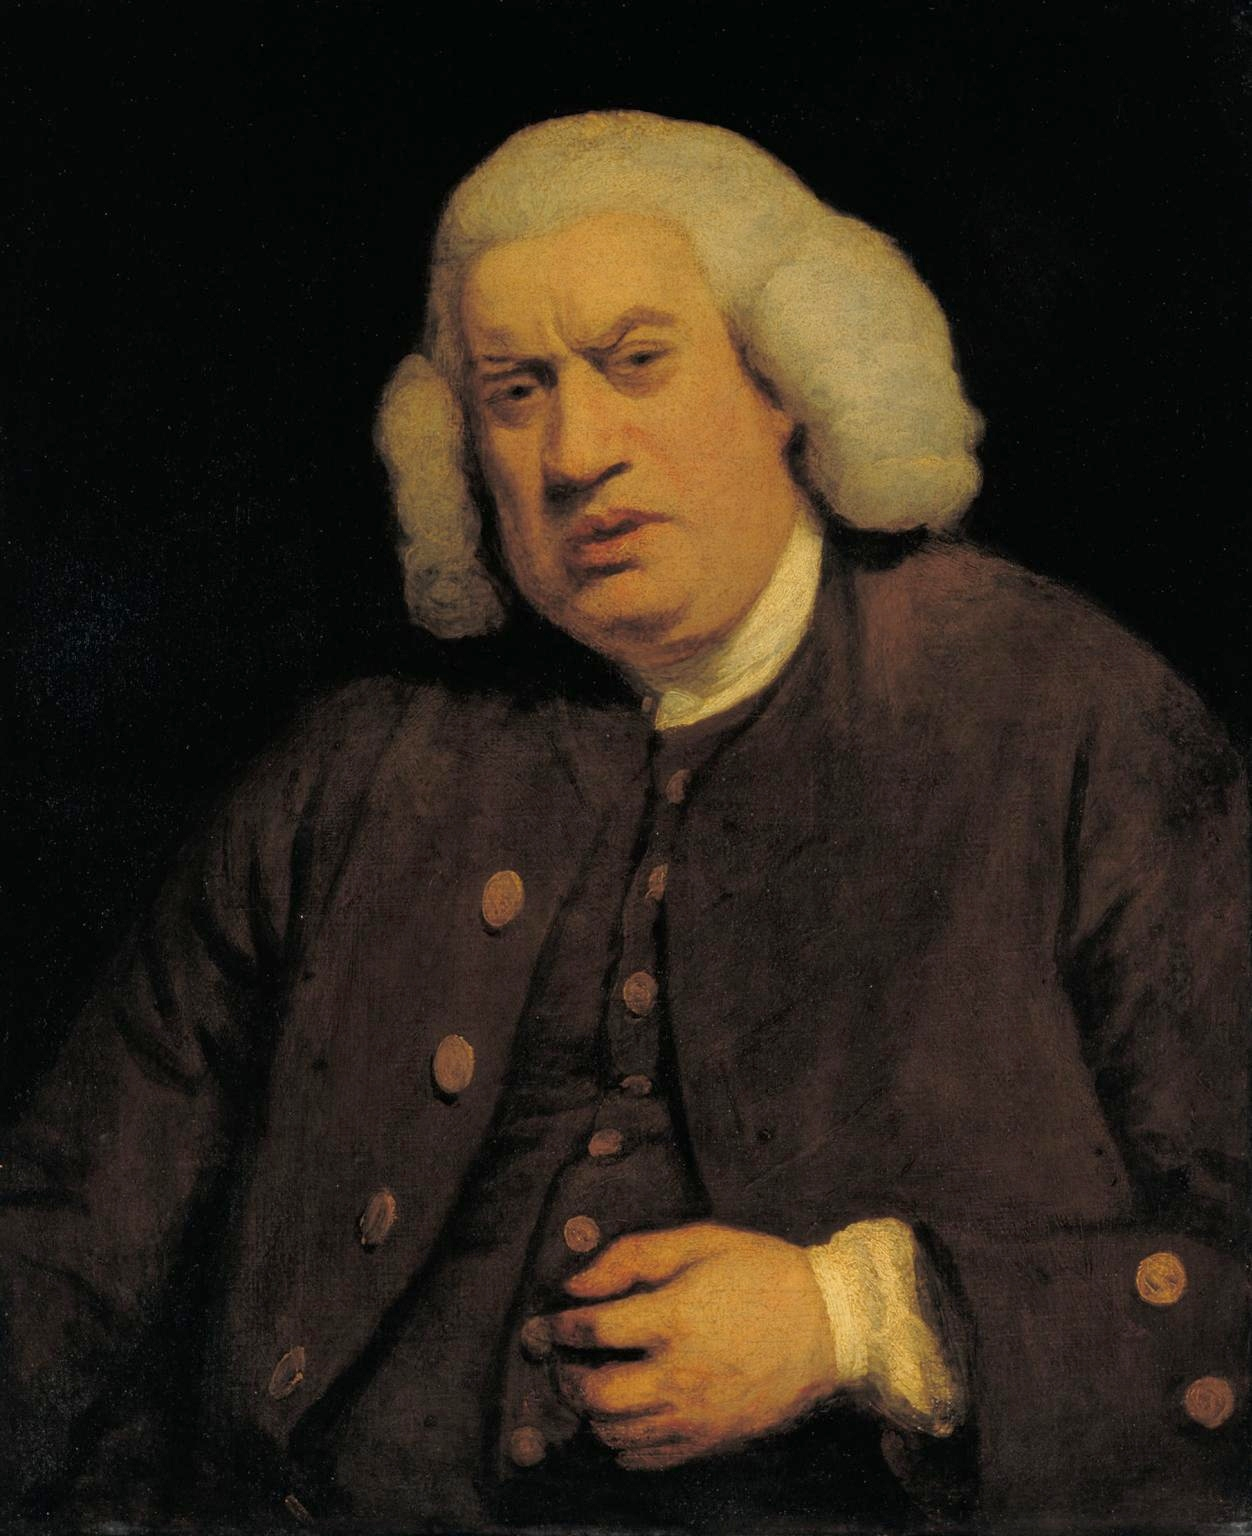 Photo of Samuel Johnson